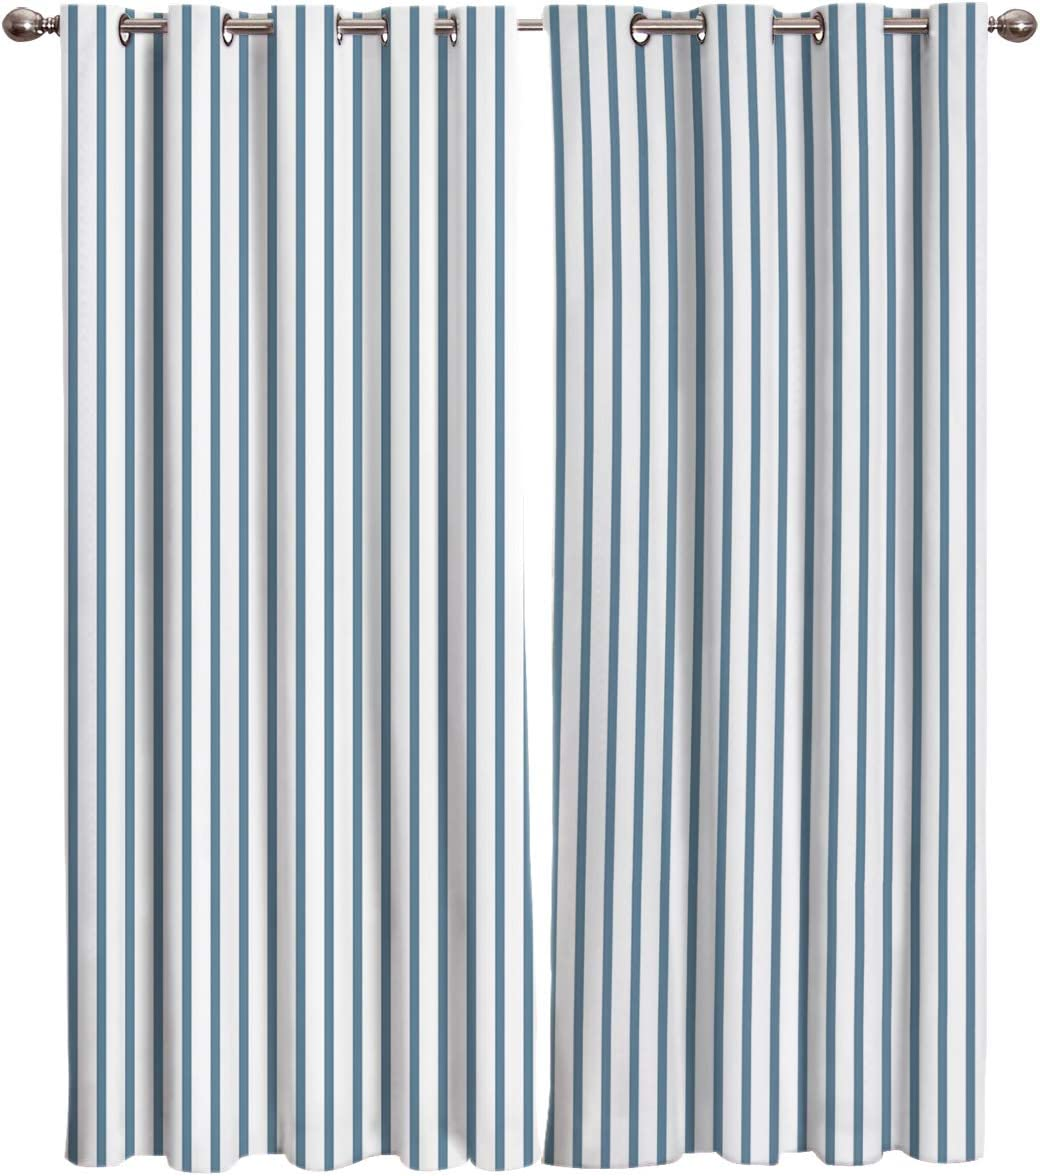 Limited price FortuneHouse8 Blackout Curtains Max 75% OFF Thermal Simple Modern Insulated